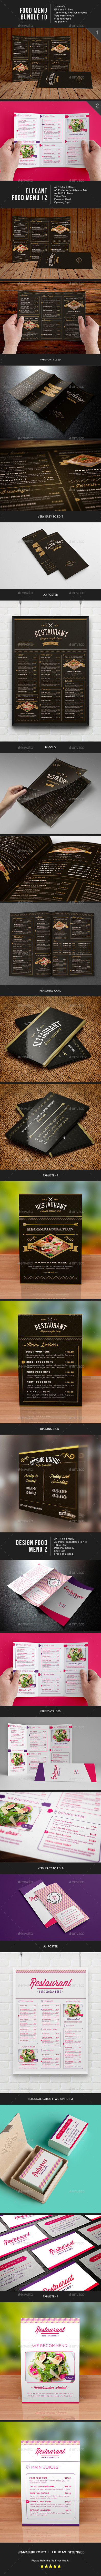 GraphicRiver Food Menu Bundle 10 8949947